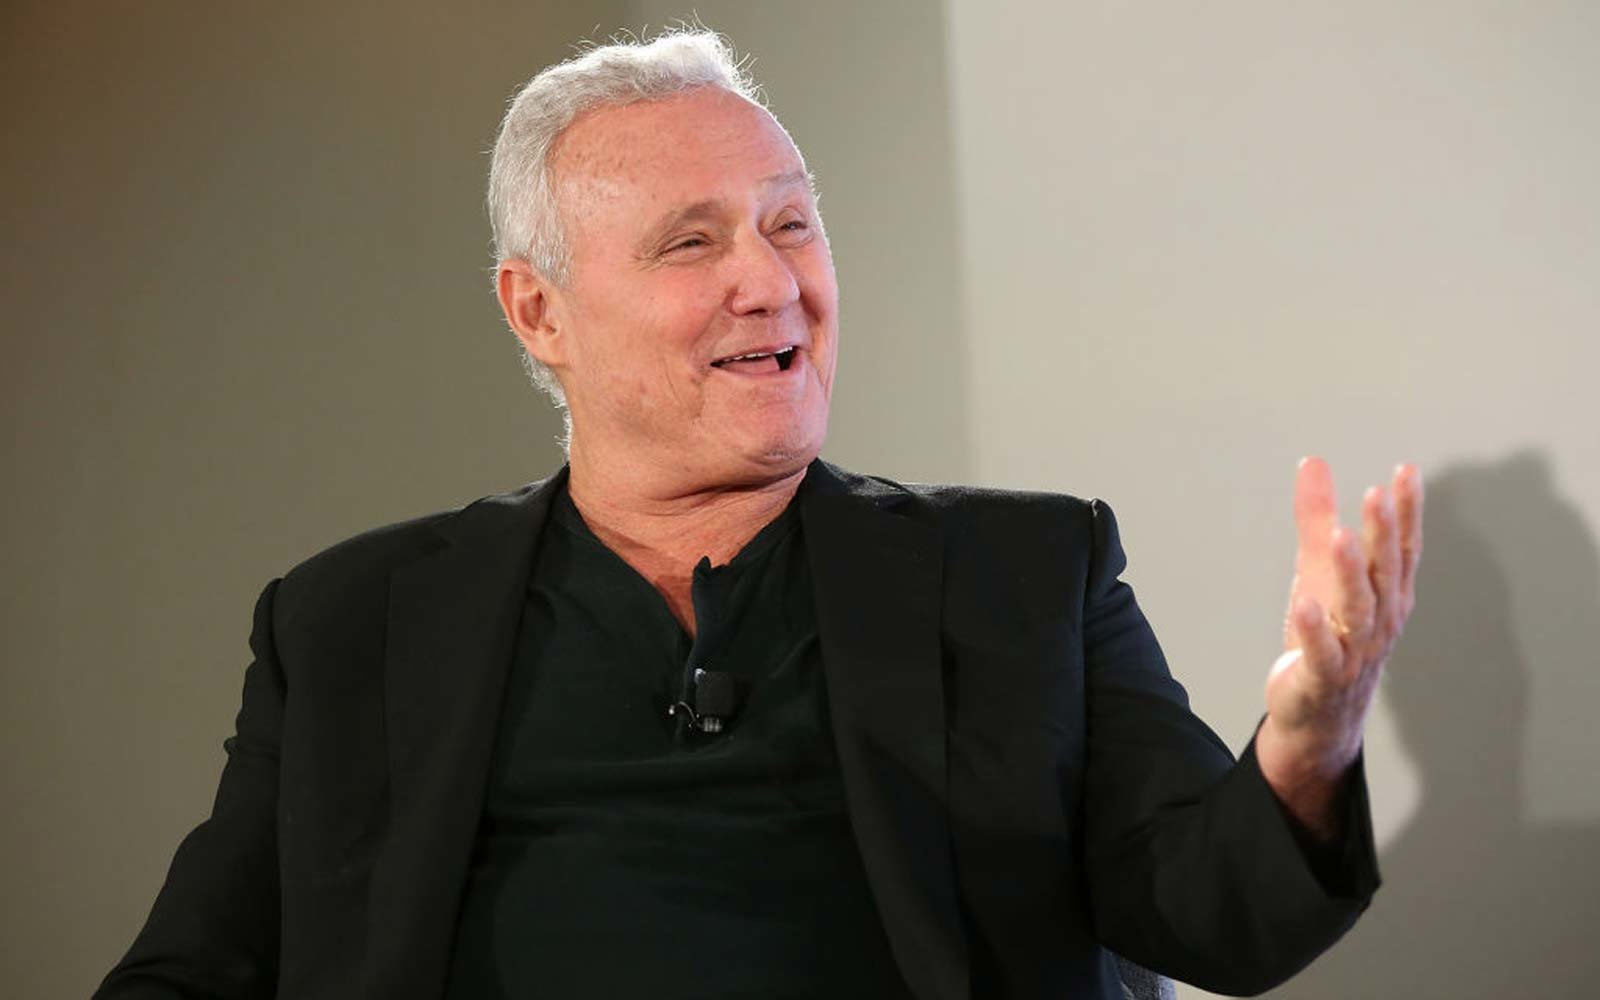 Ian Schrager speaks onstage at D.LUXE